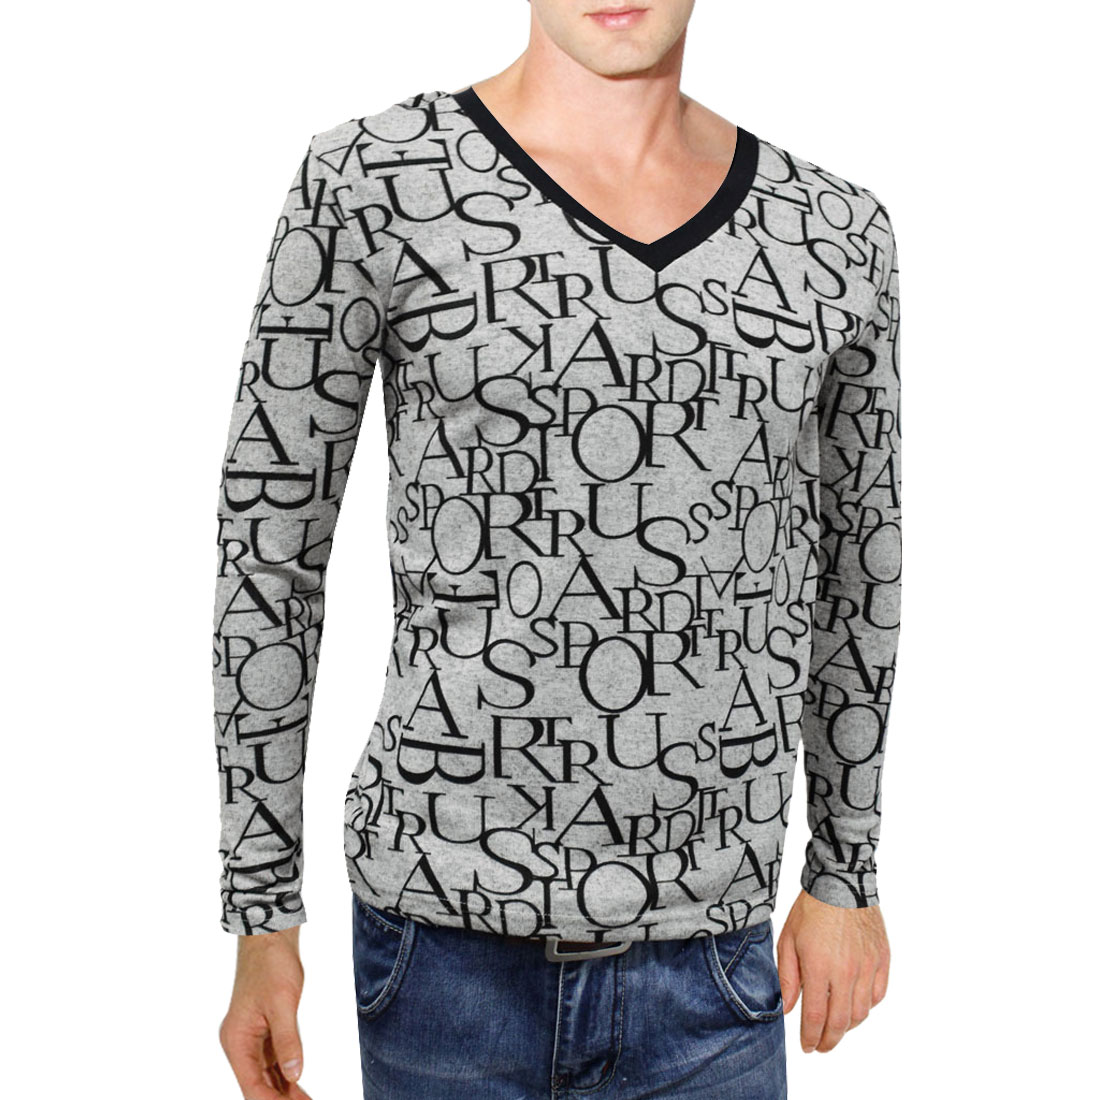 Man NEW Letter Printed V Neck Stretchy Long Sleeve Black Gray Tops S